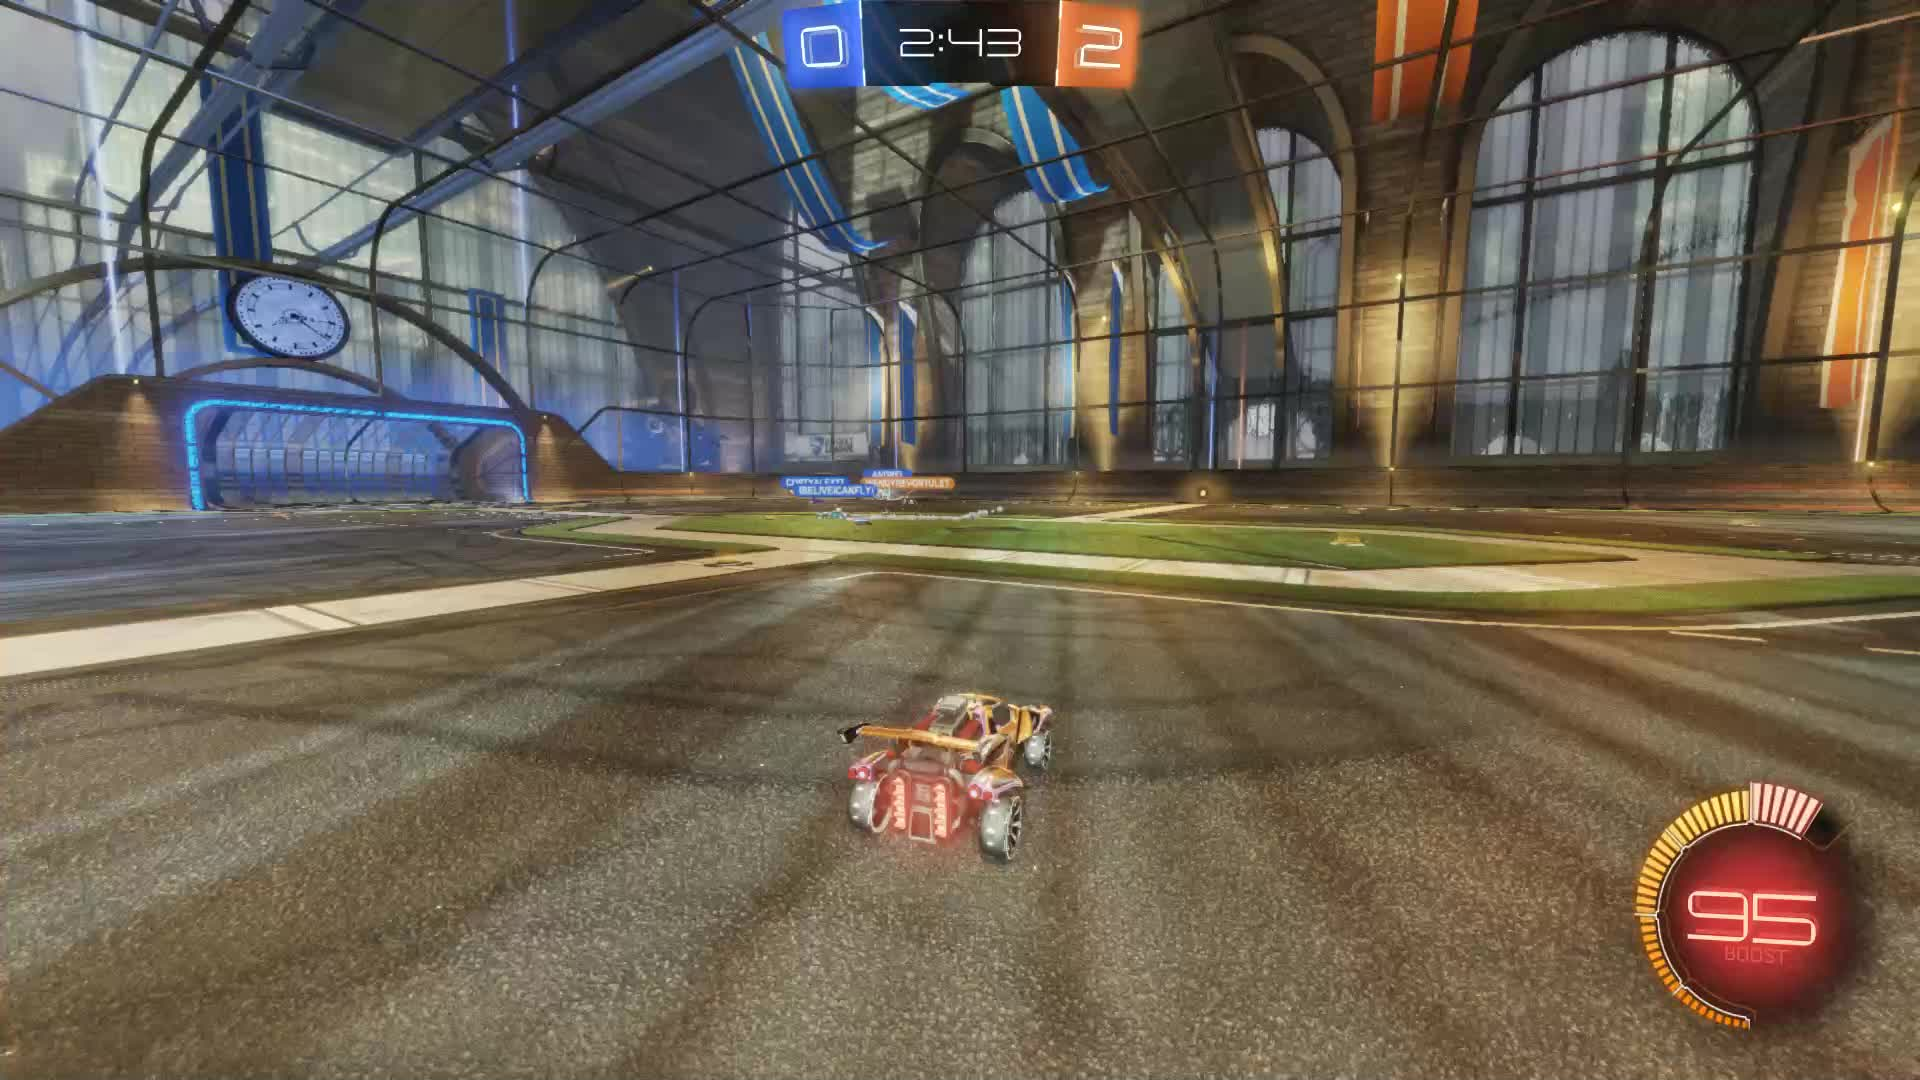 Gif Your Game, GifYourGame, Goal, Rocket League, RocketLeague, SCOTLAND FOREVER, Goal 3: SCOTLAND FOREVER GIFs